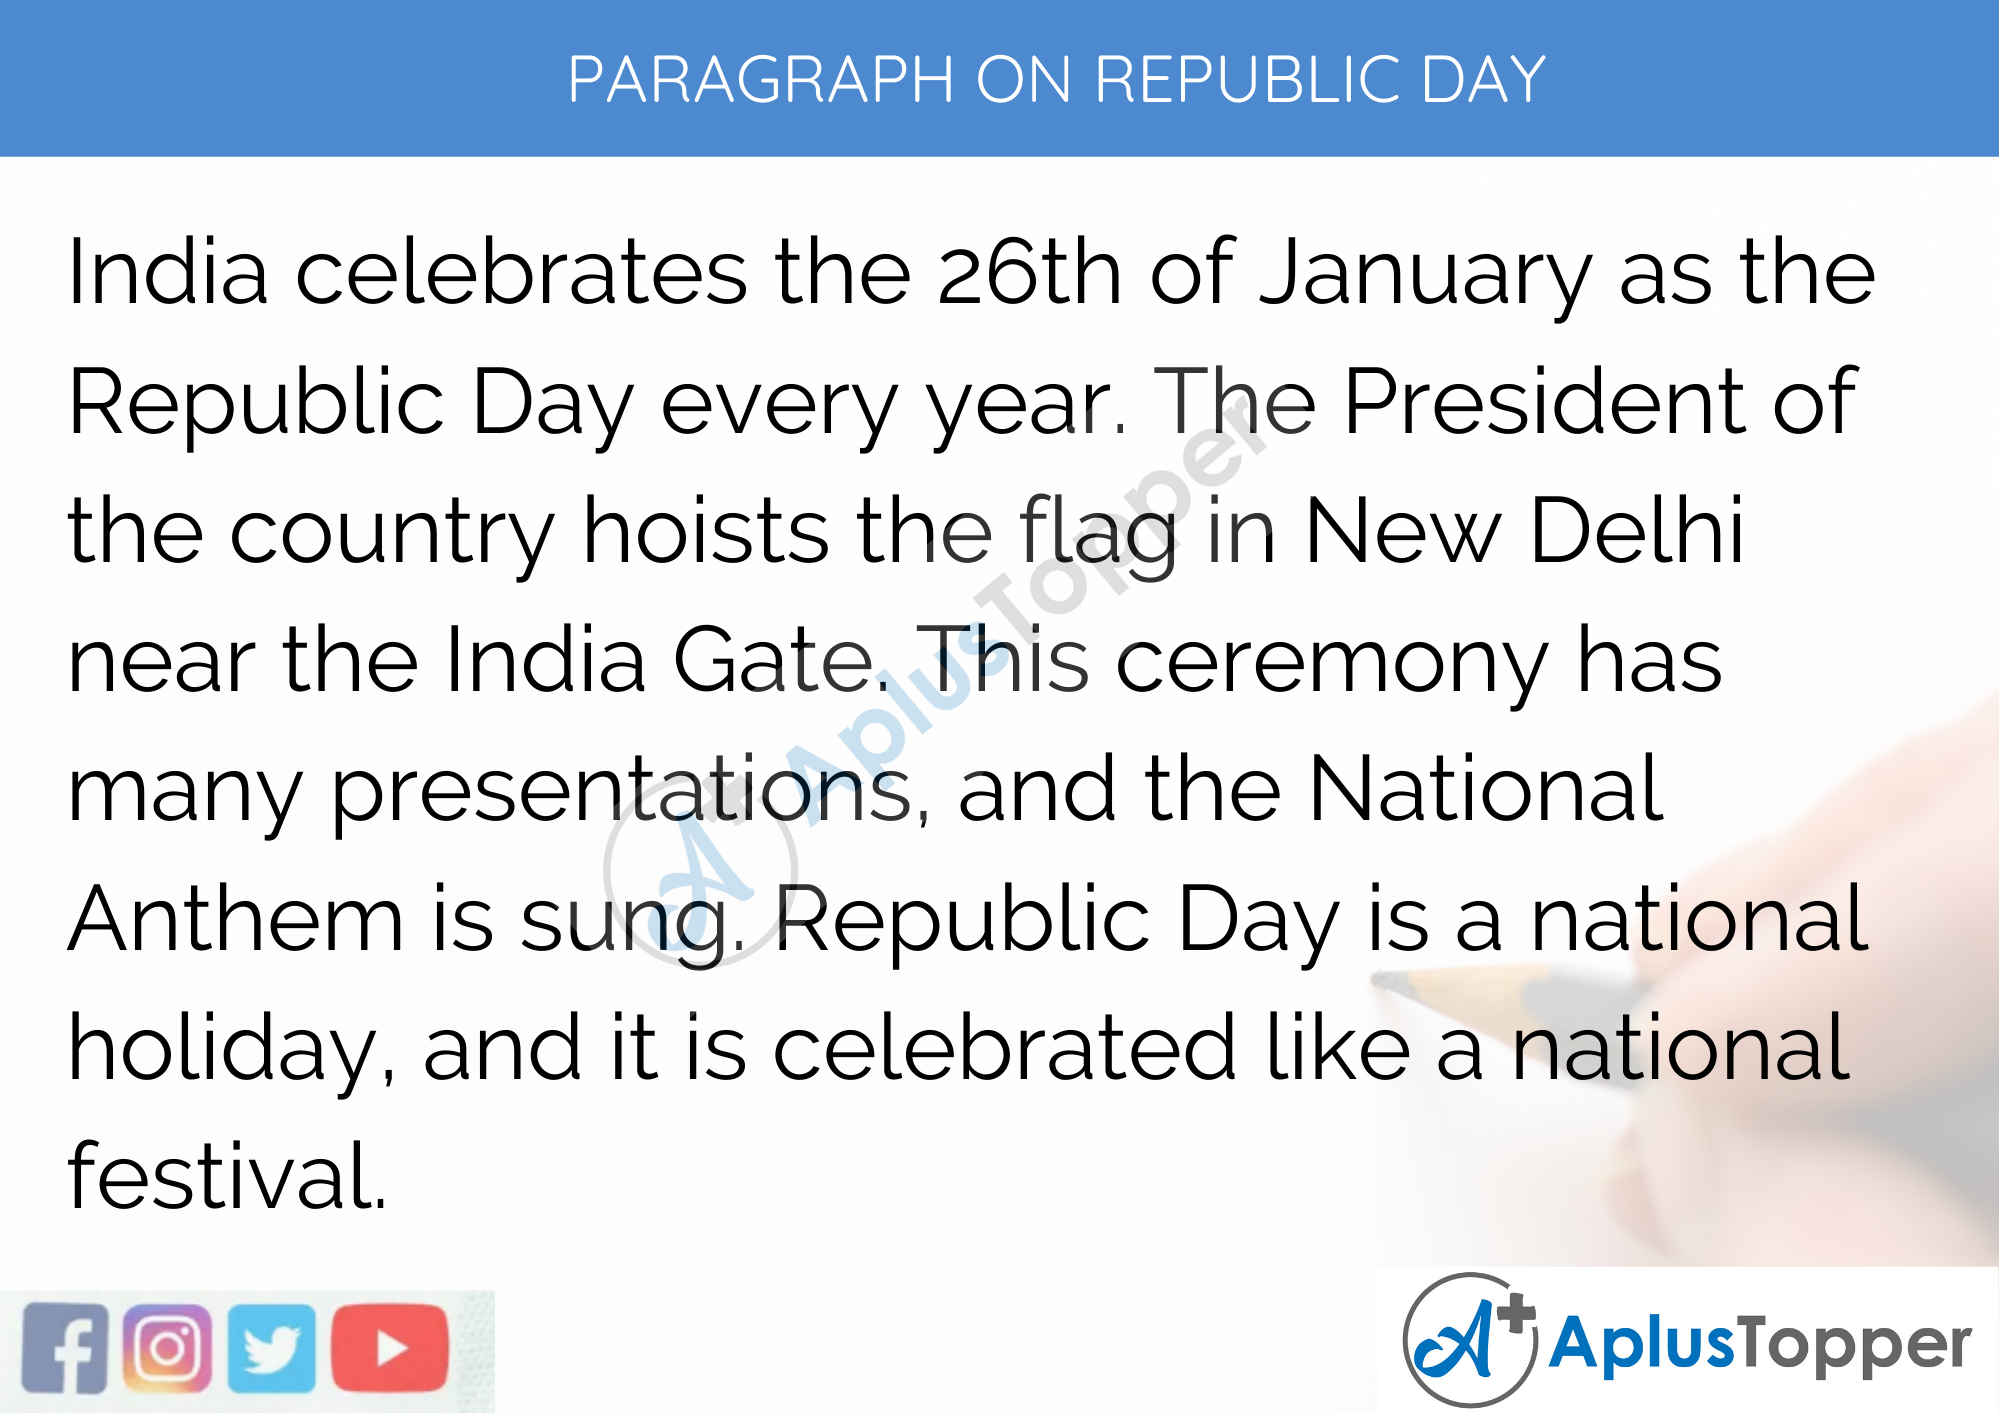 Paragraph on Republic Day - 100 Words for Classes 1, 2, and 3 Kids